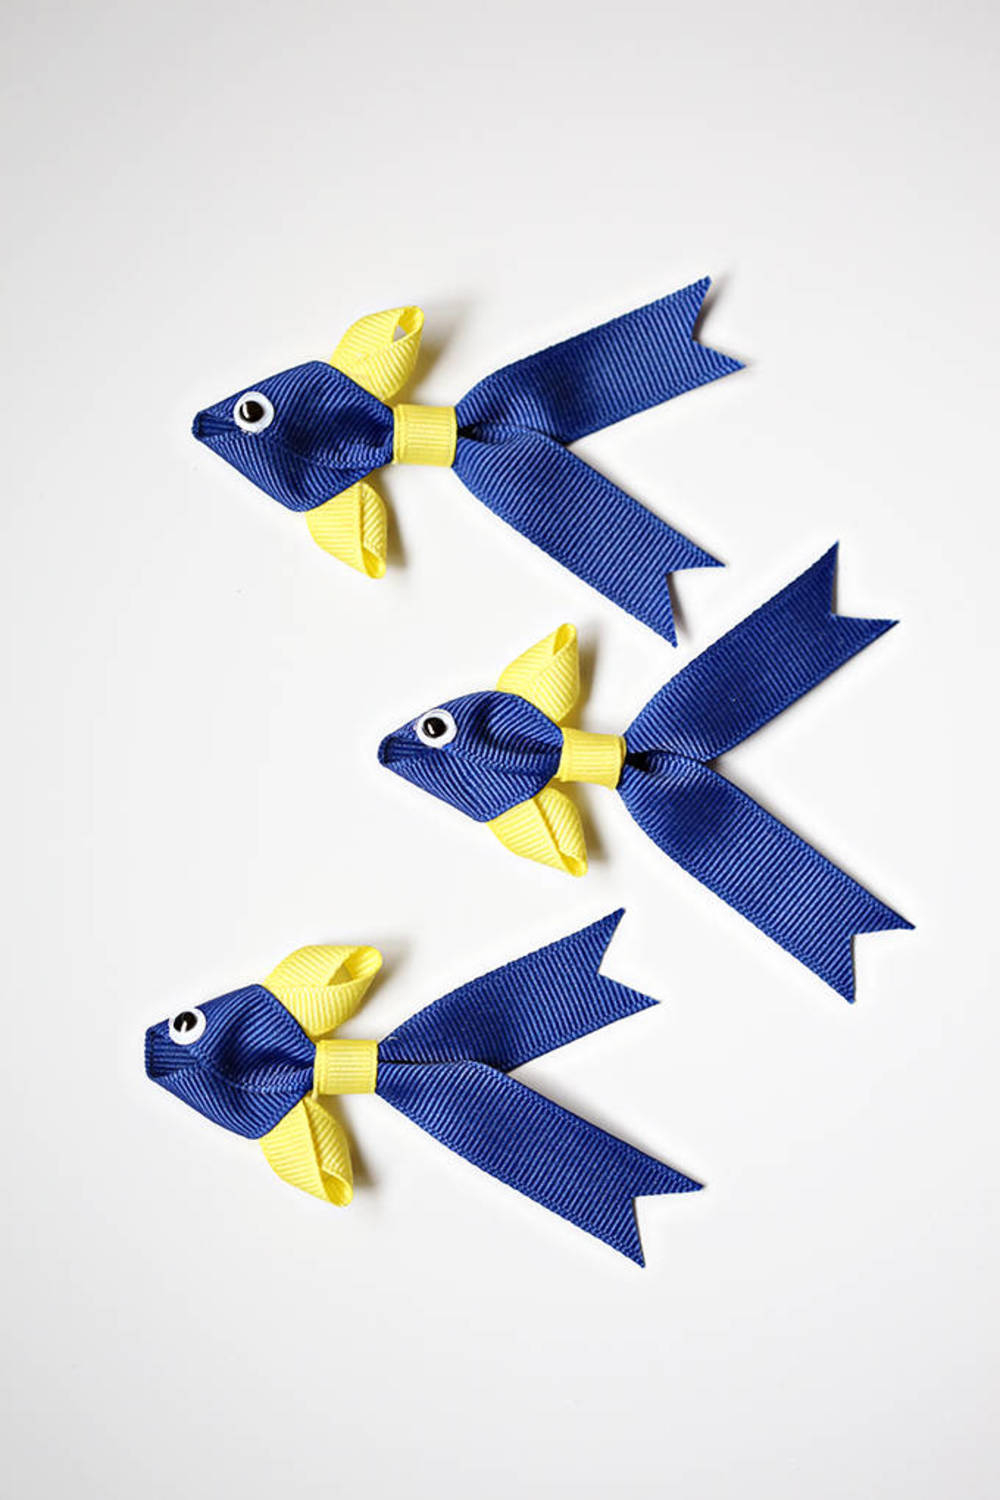 How to Make Paper Craft Fish for Kids 15 Adorable Fish Crafts Your Kids Will Love Blitsy